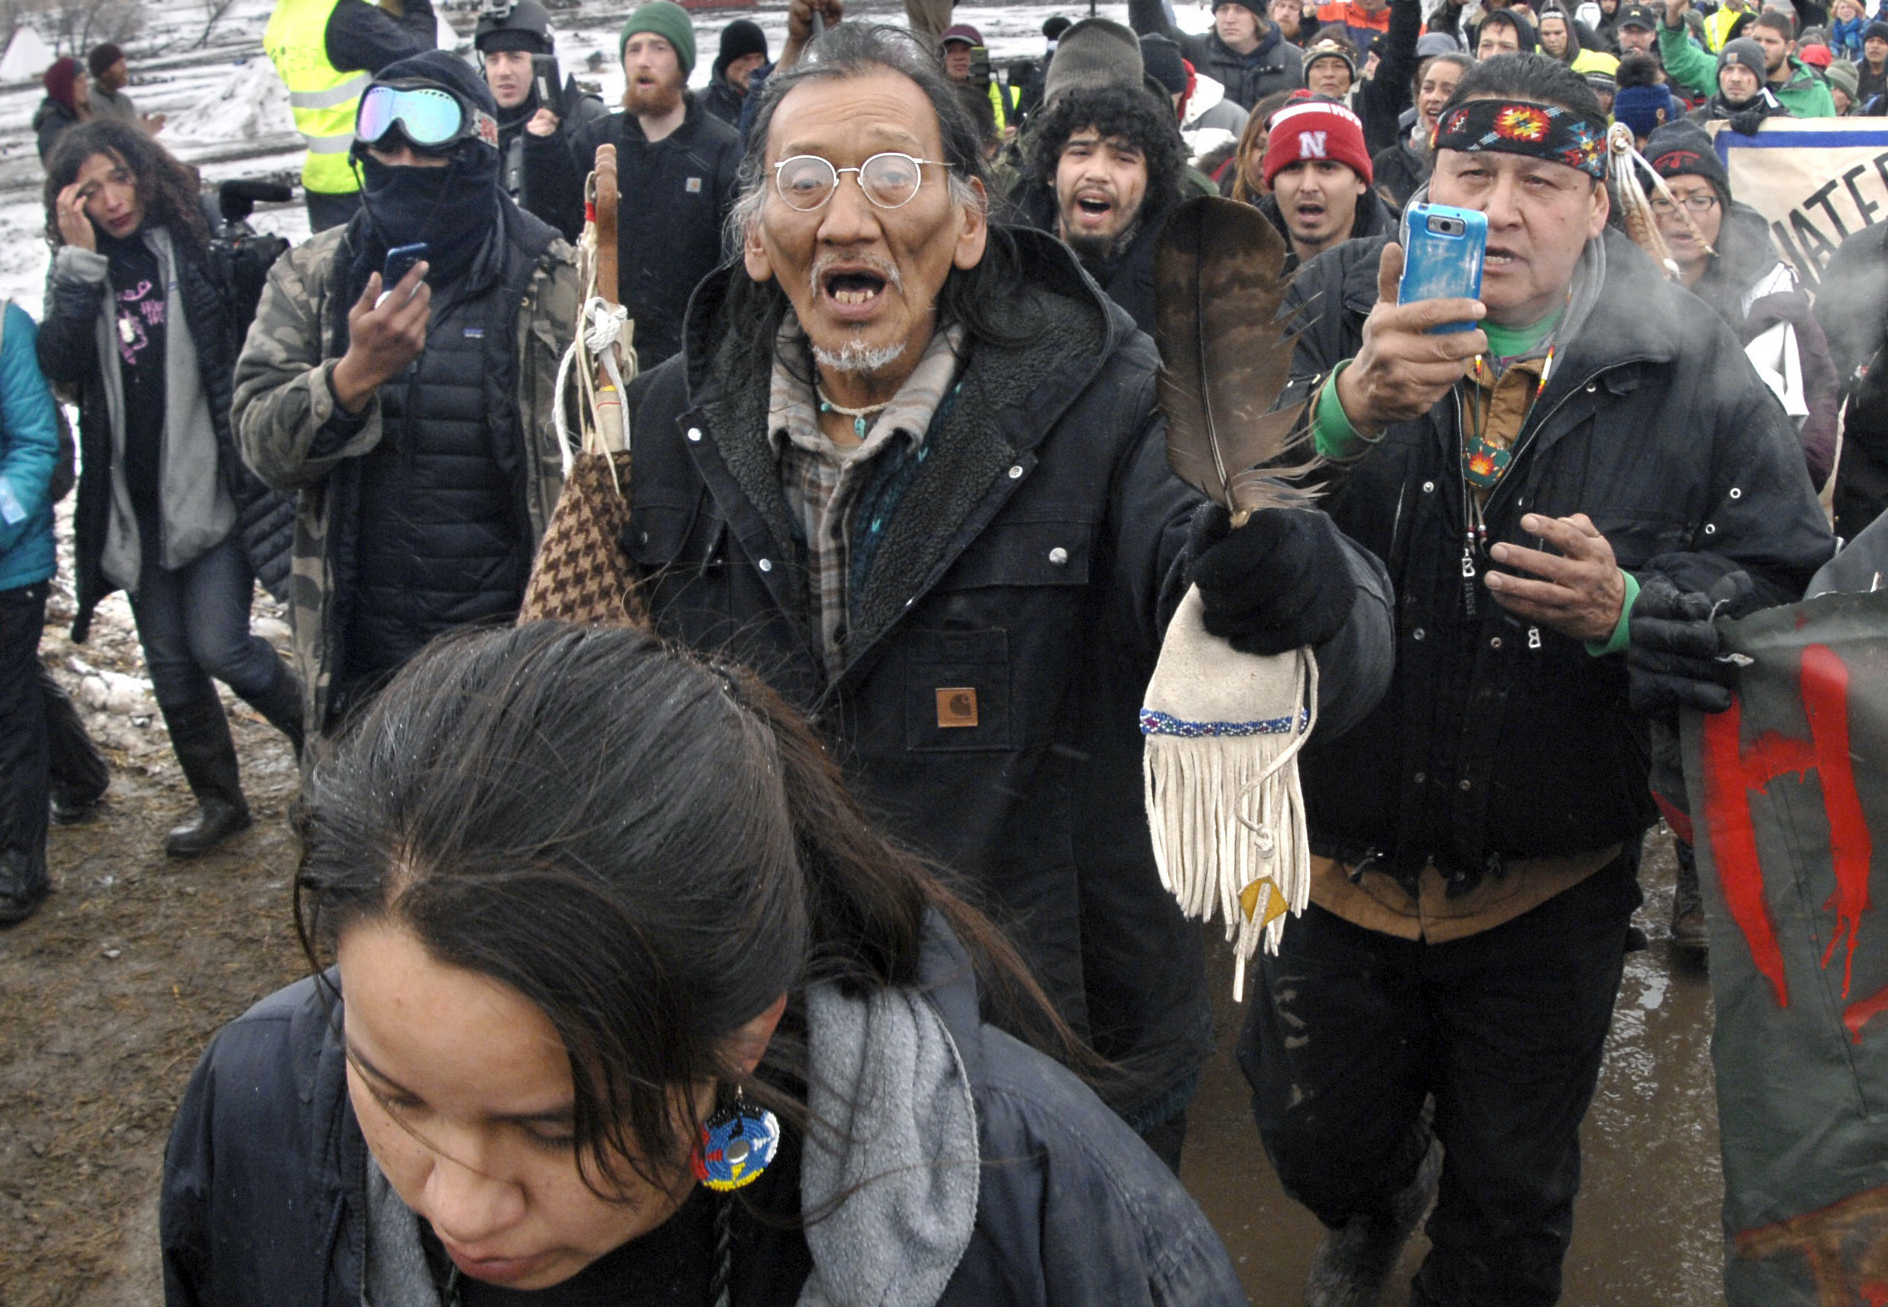 Nathan Phillips won't meet with students